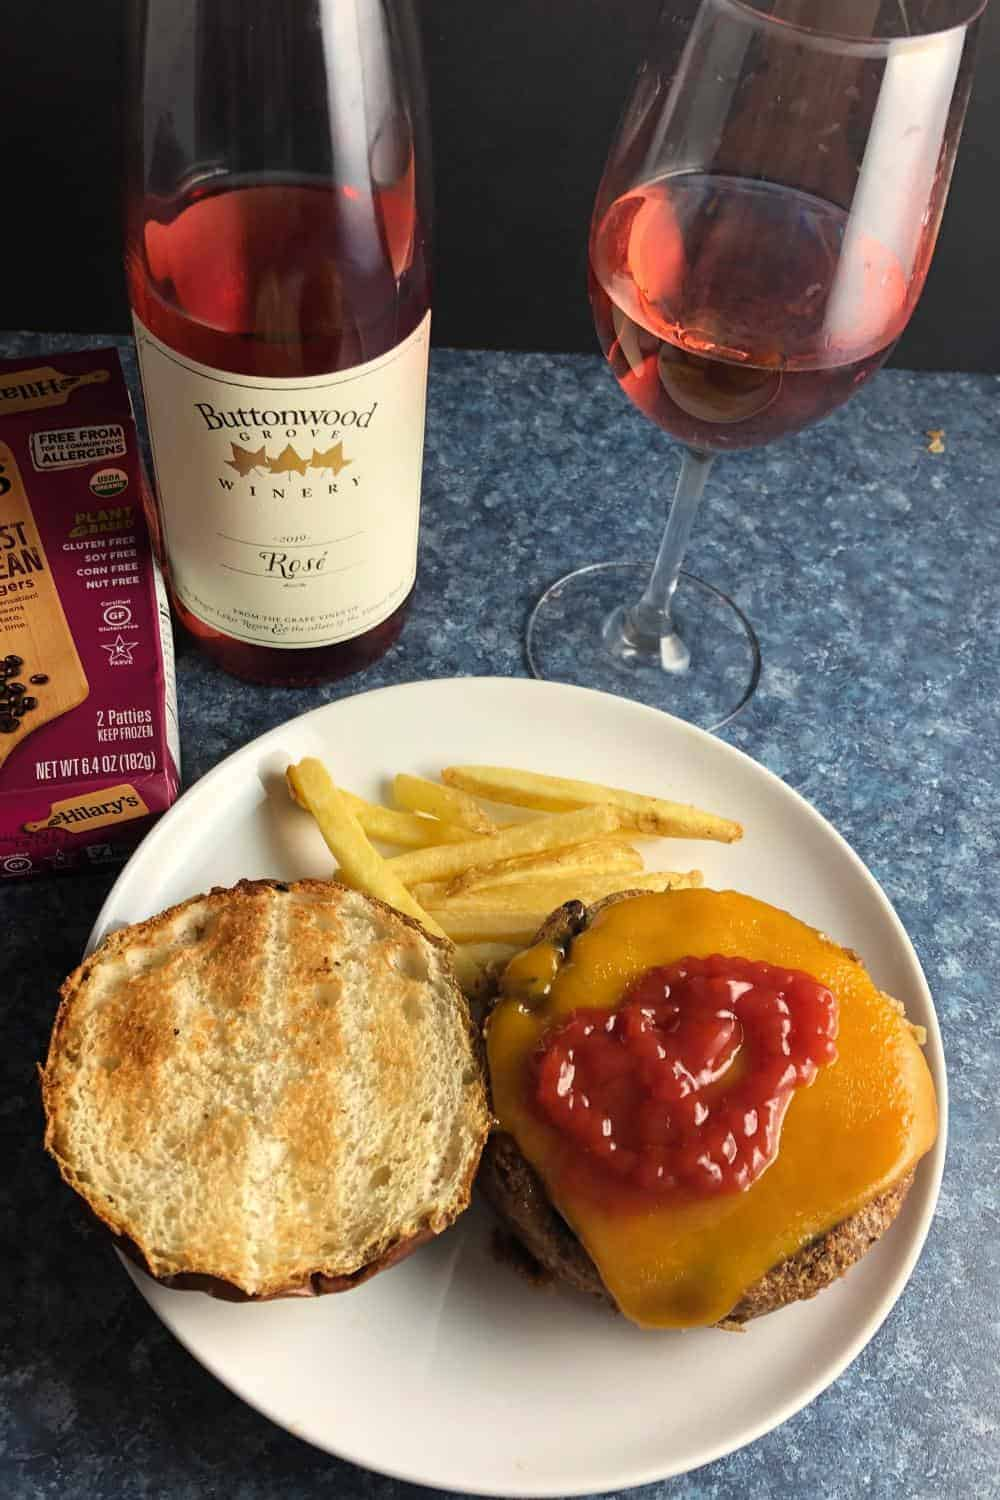 rosé wine served with a veggie burger.